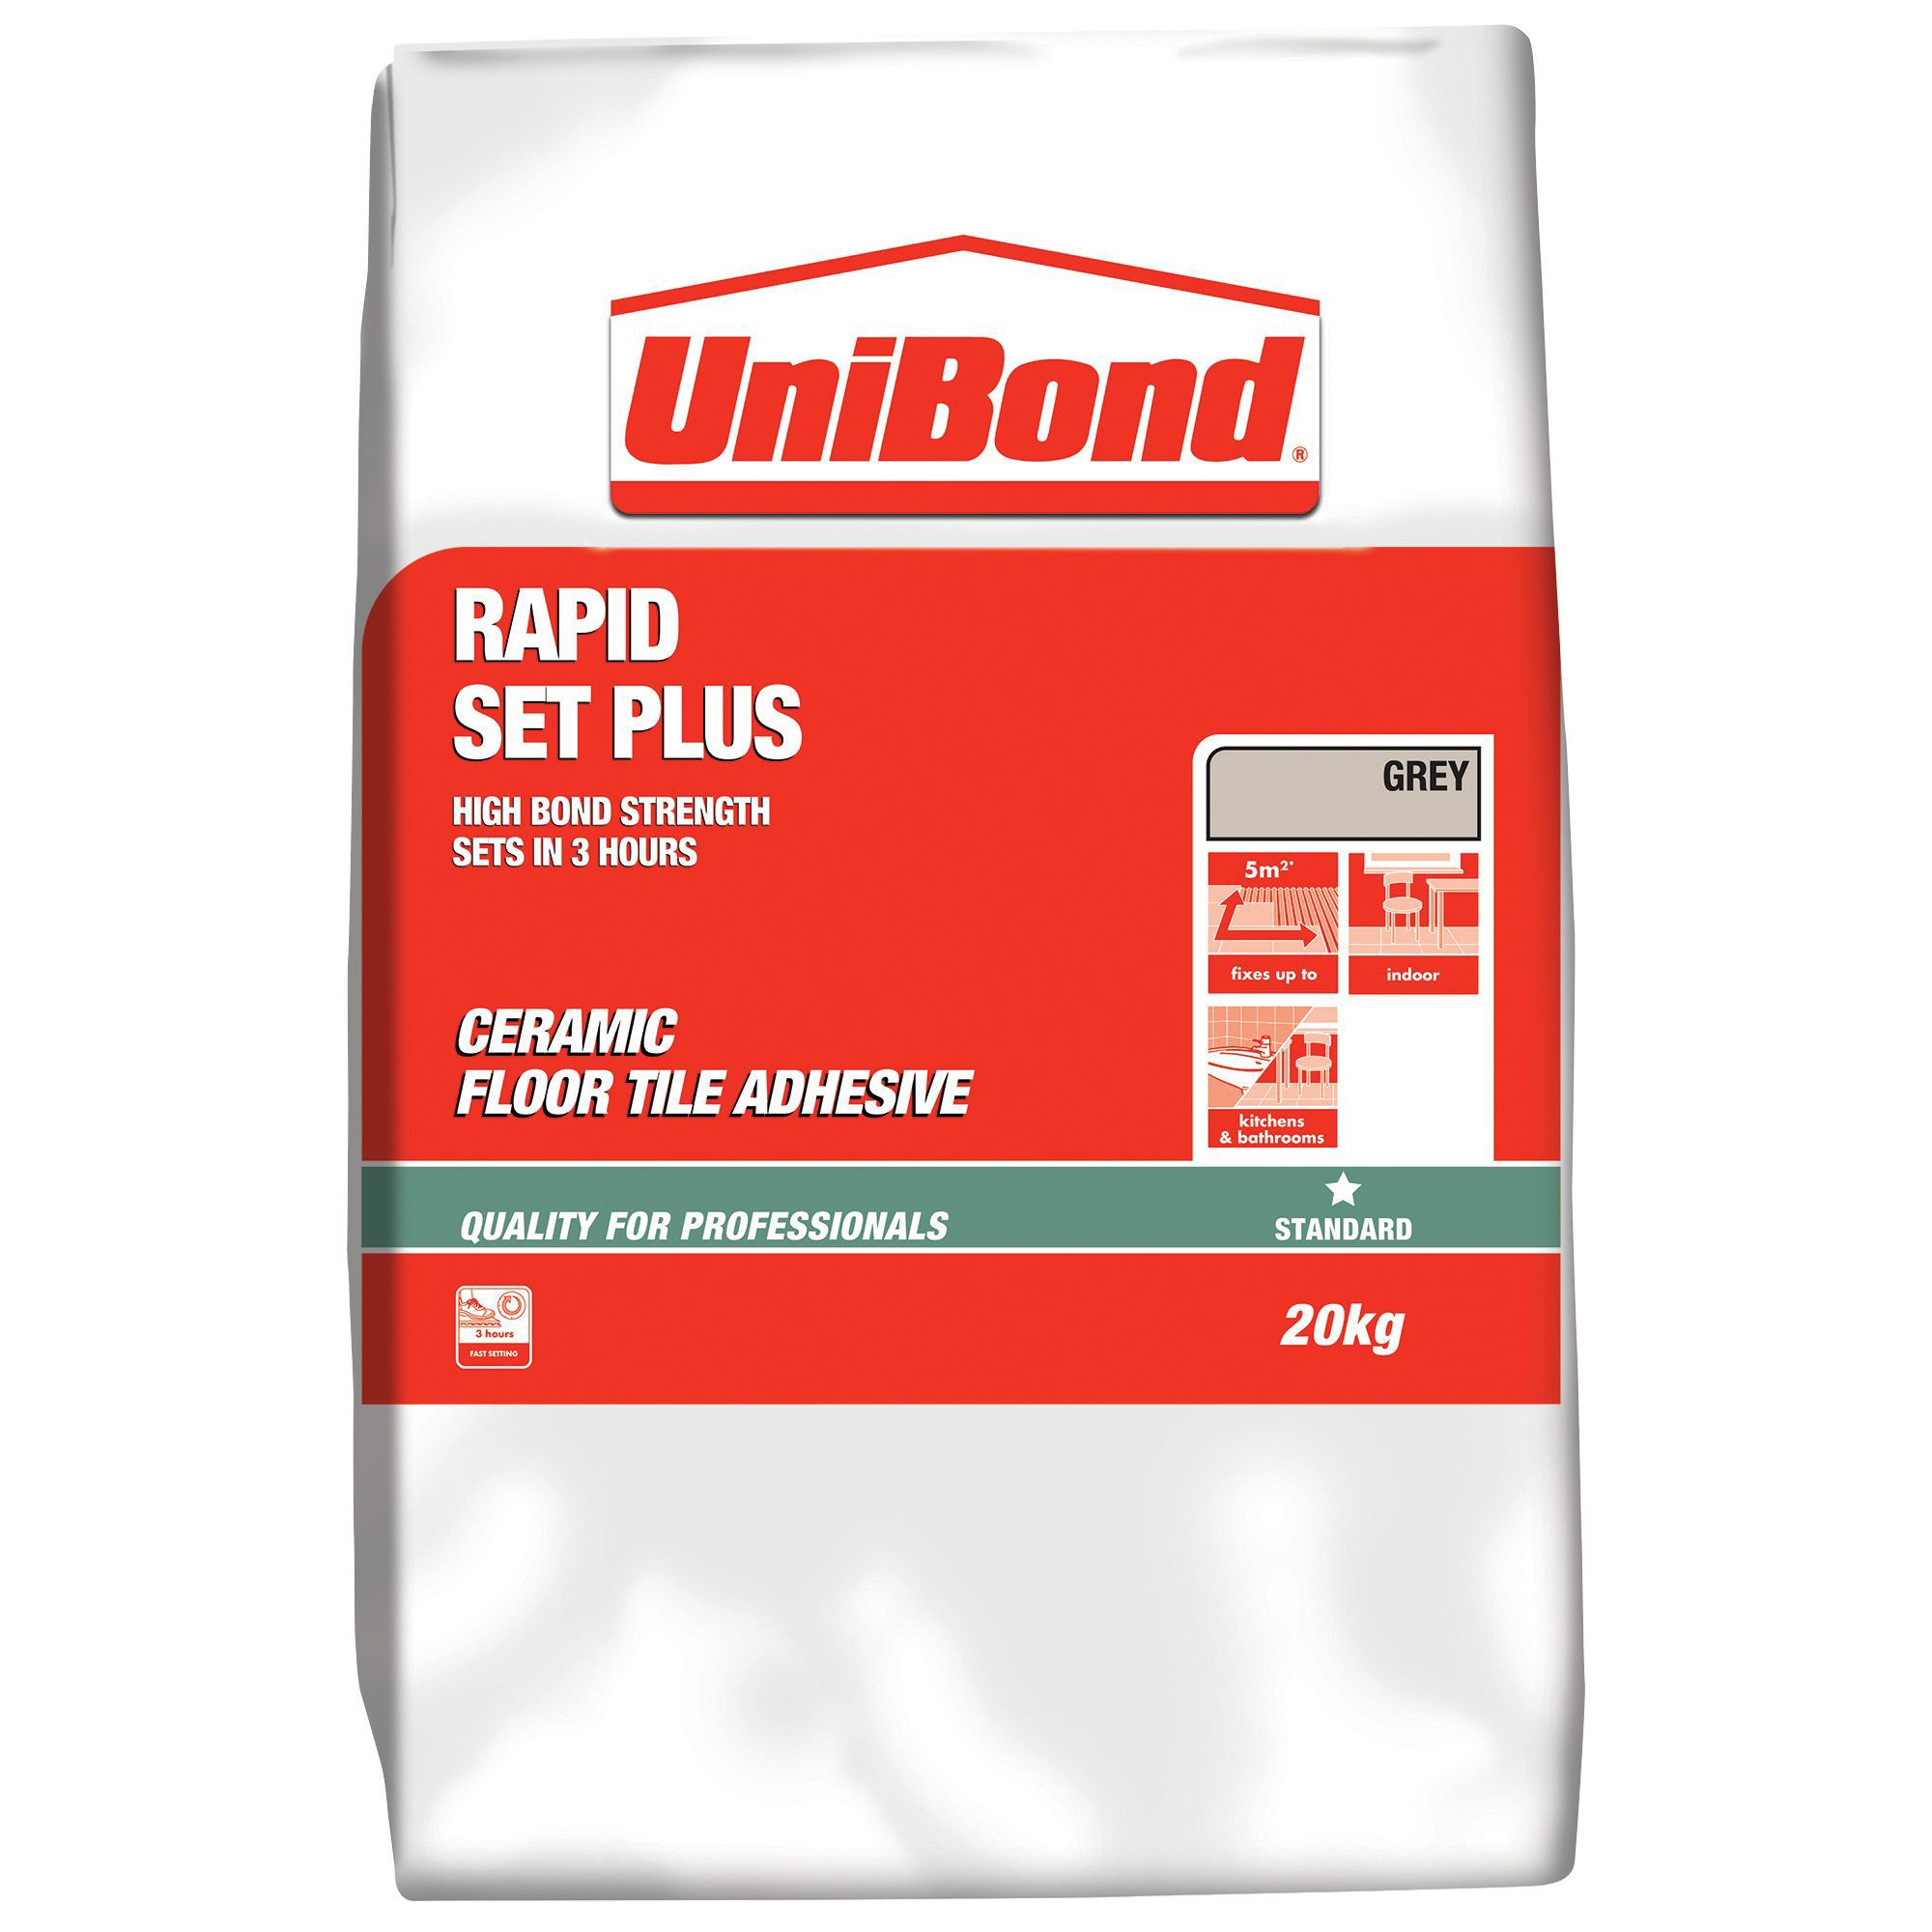 Unibond rapid set plus powder floor tile adhesive grey 20kg unibond rapid set plus powder floor tile adhesive grey 20kg departments diy at bq dailygadgetfo Image collections